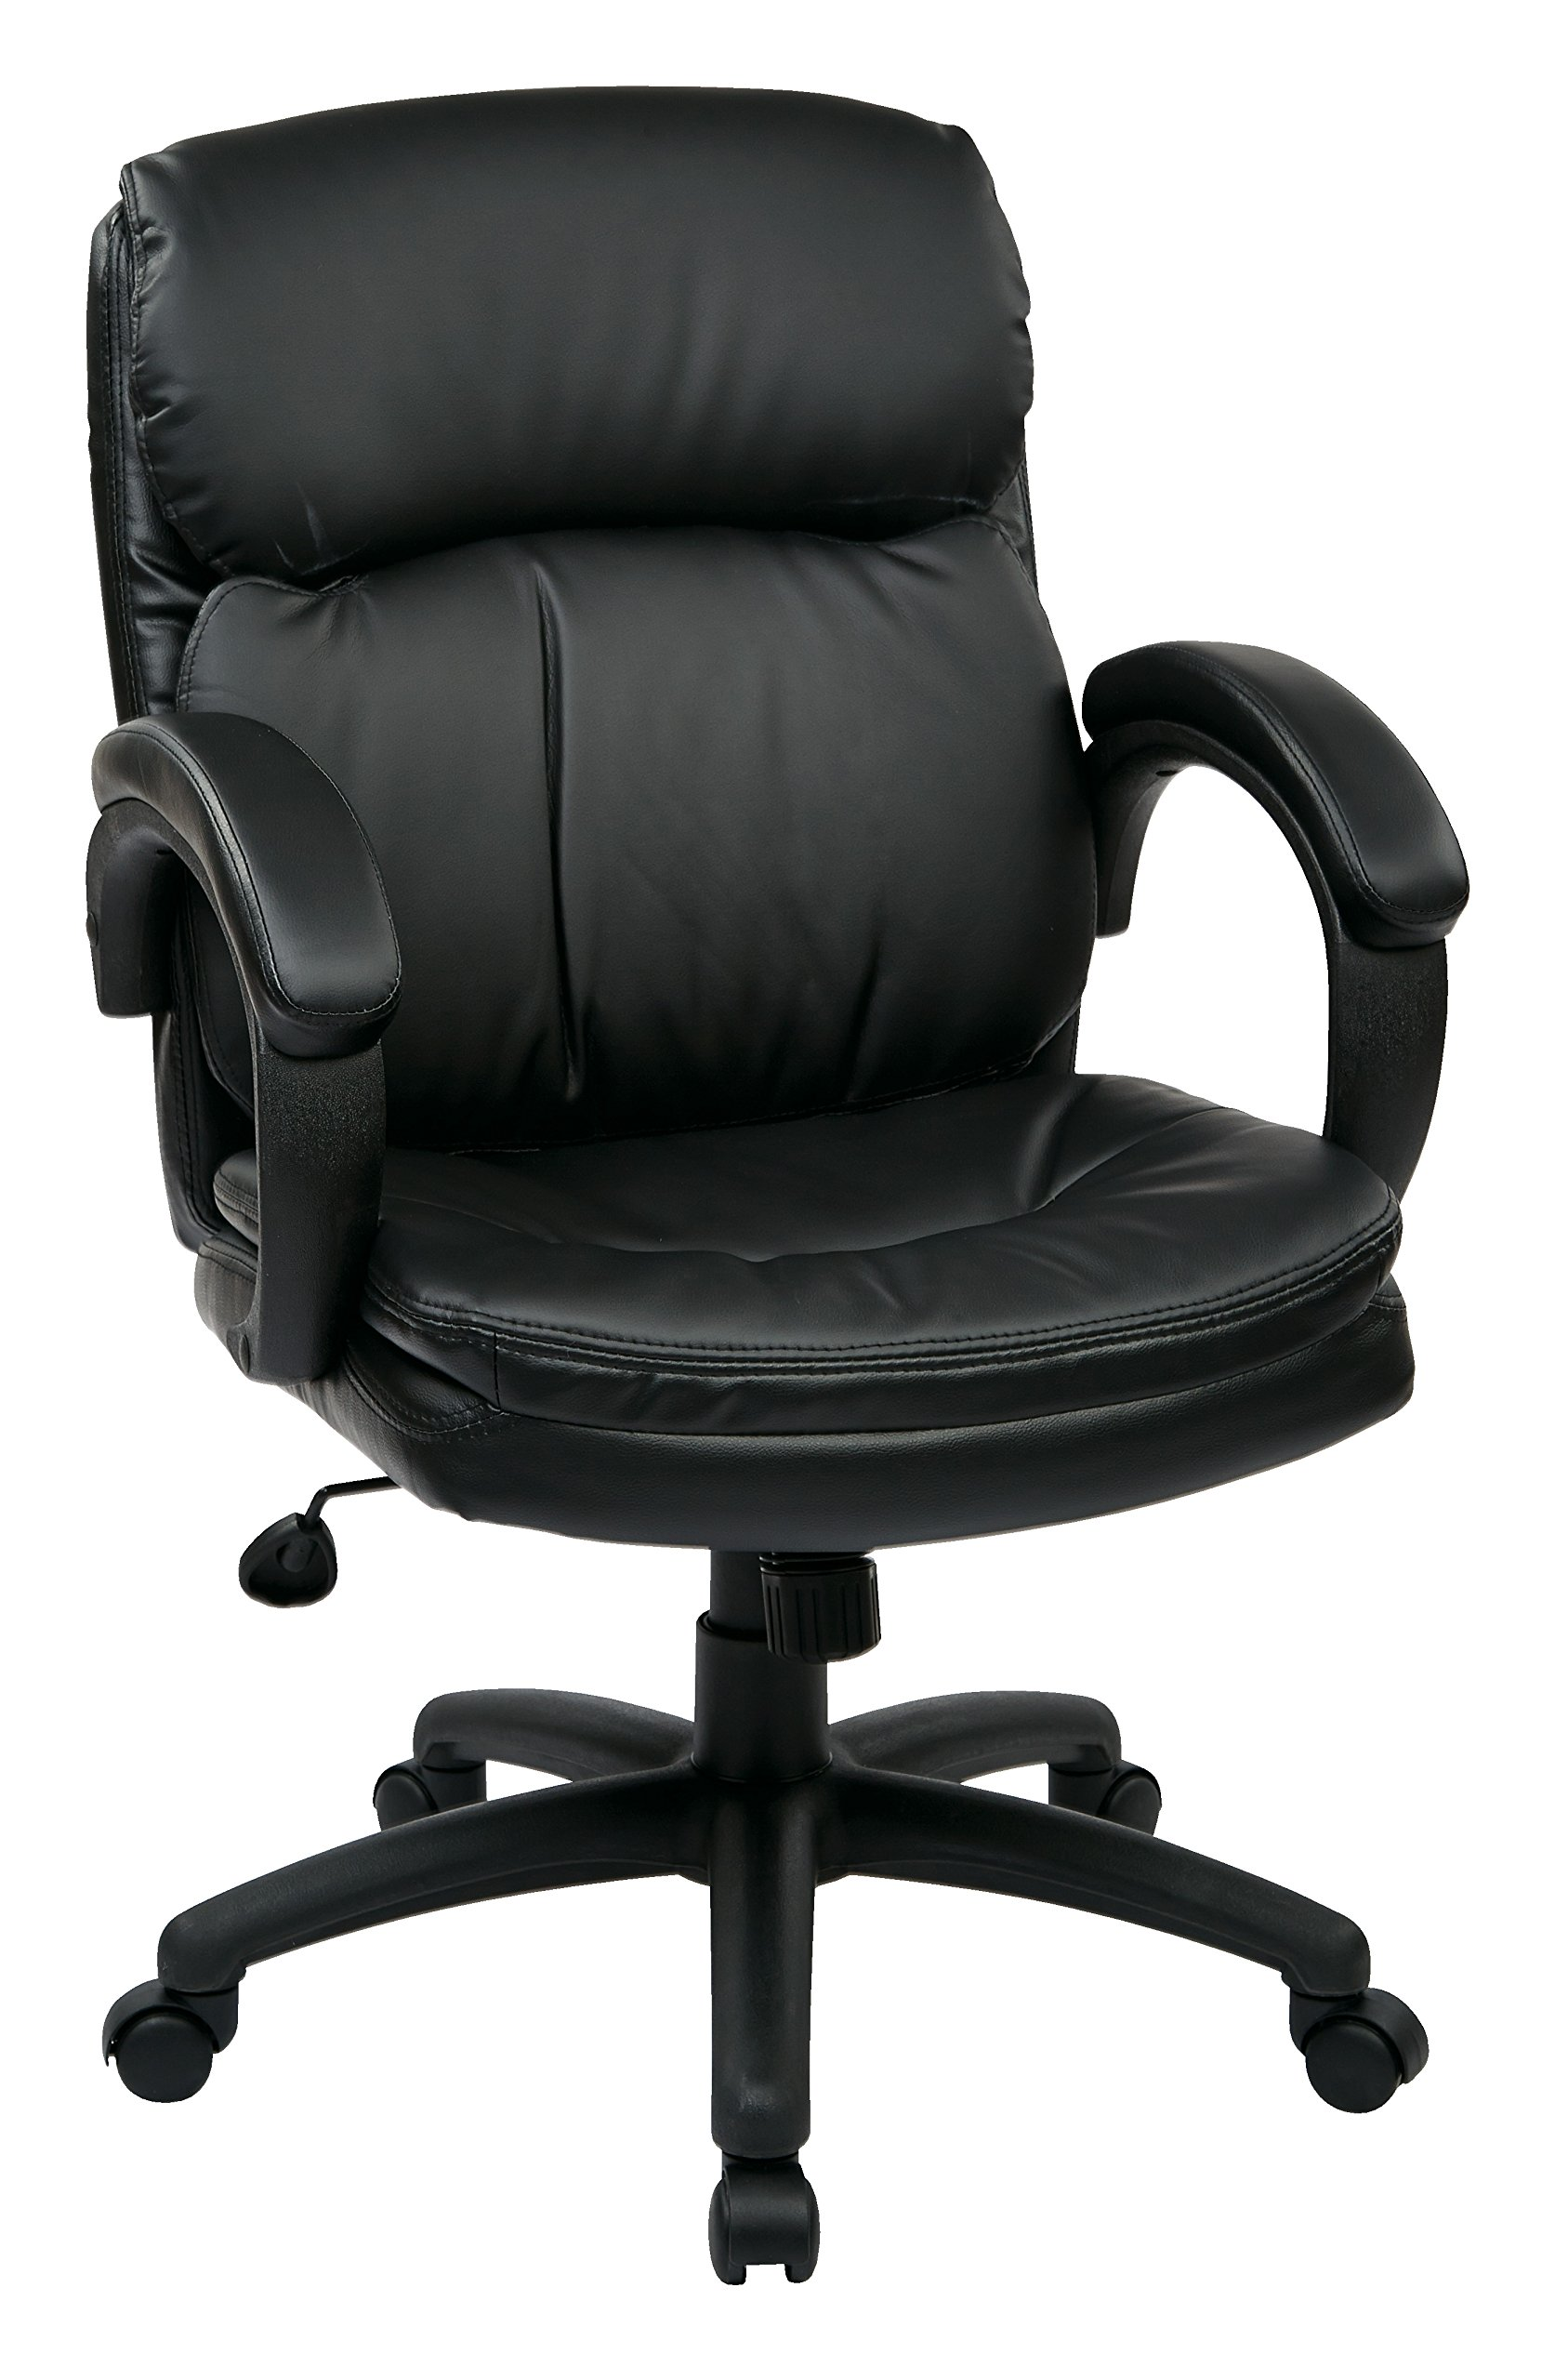 Office Star Mid Back Thick Padded Contour Seat and Back with Padded Armrests Black Eco Leather, Managers Chair